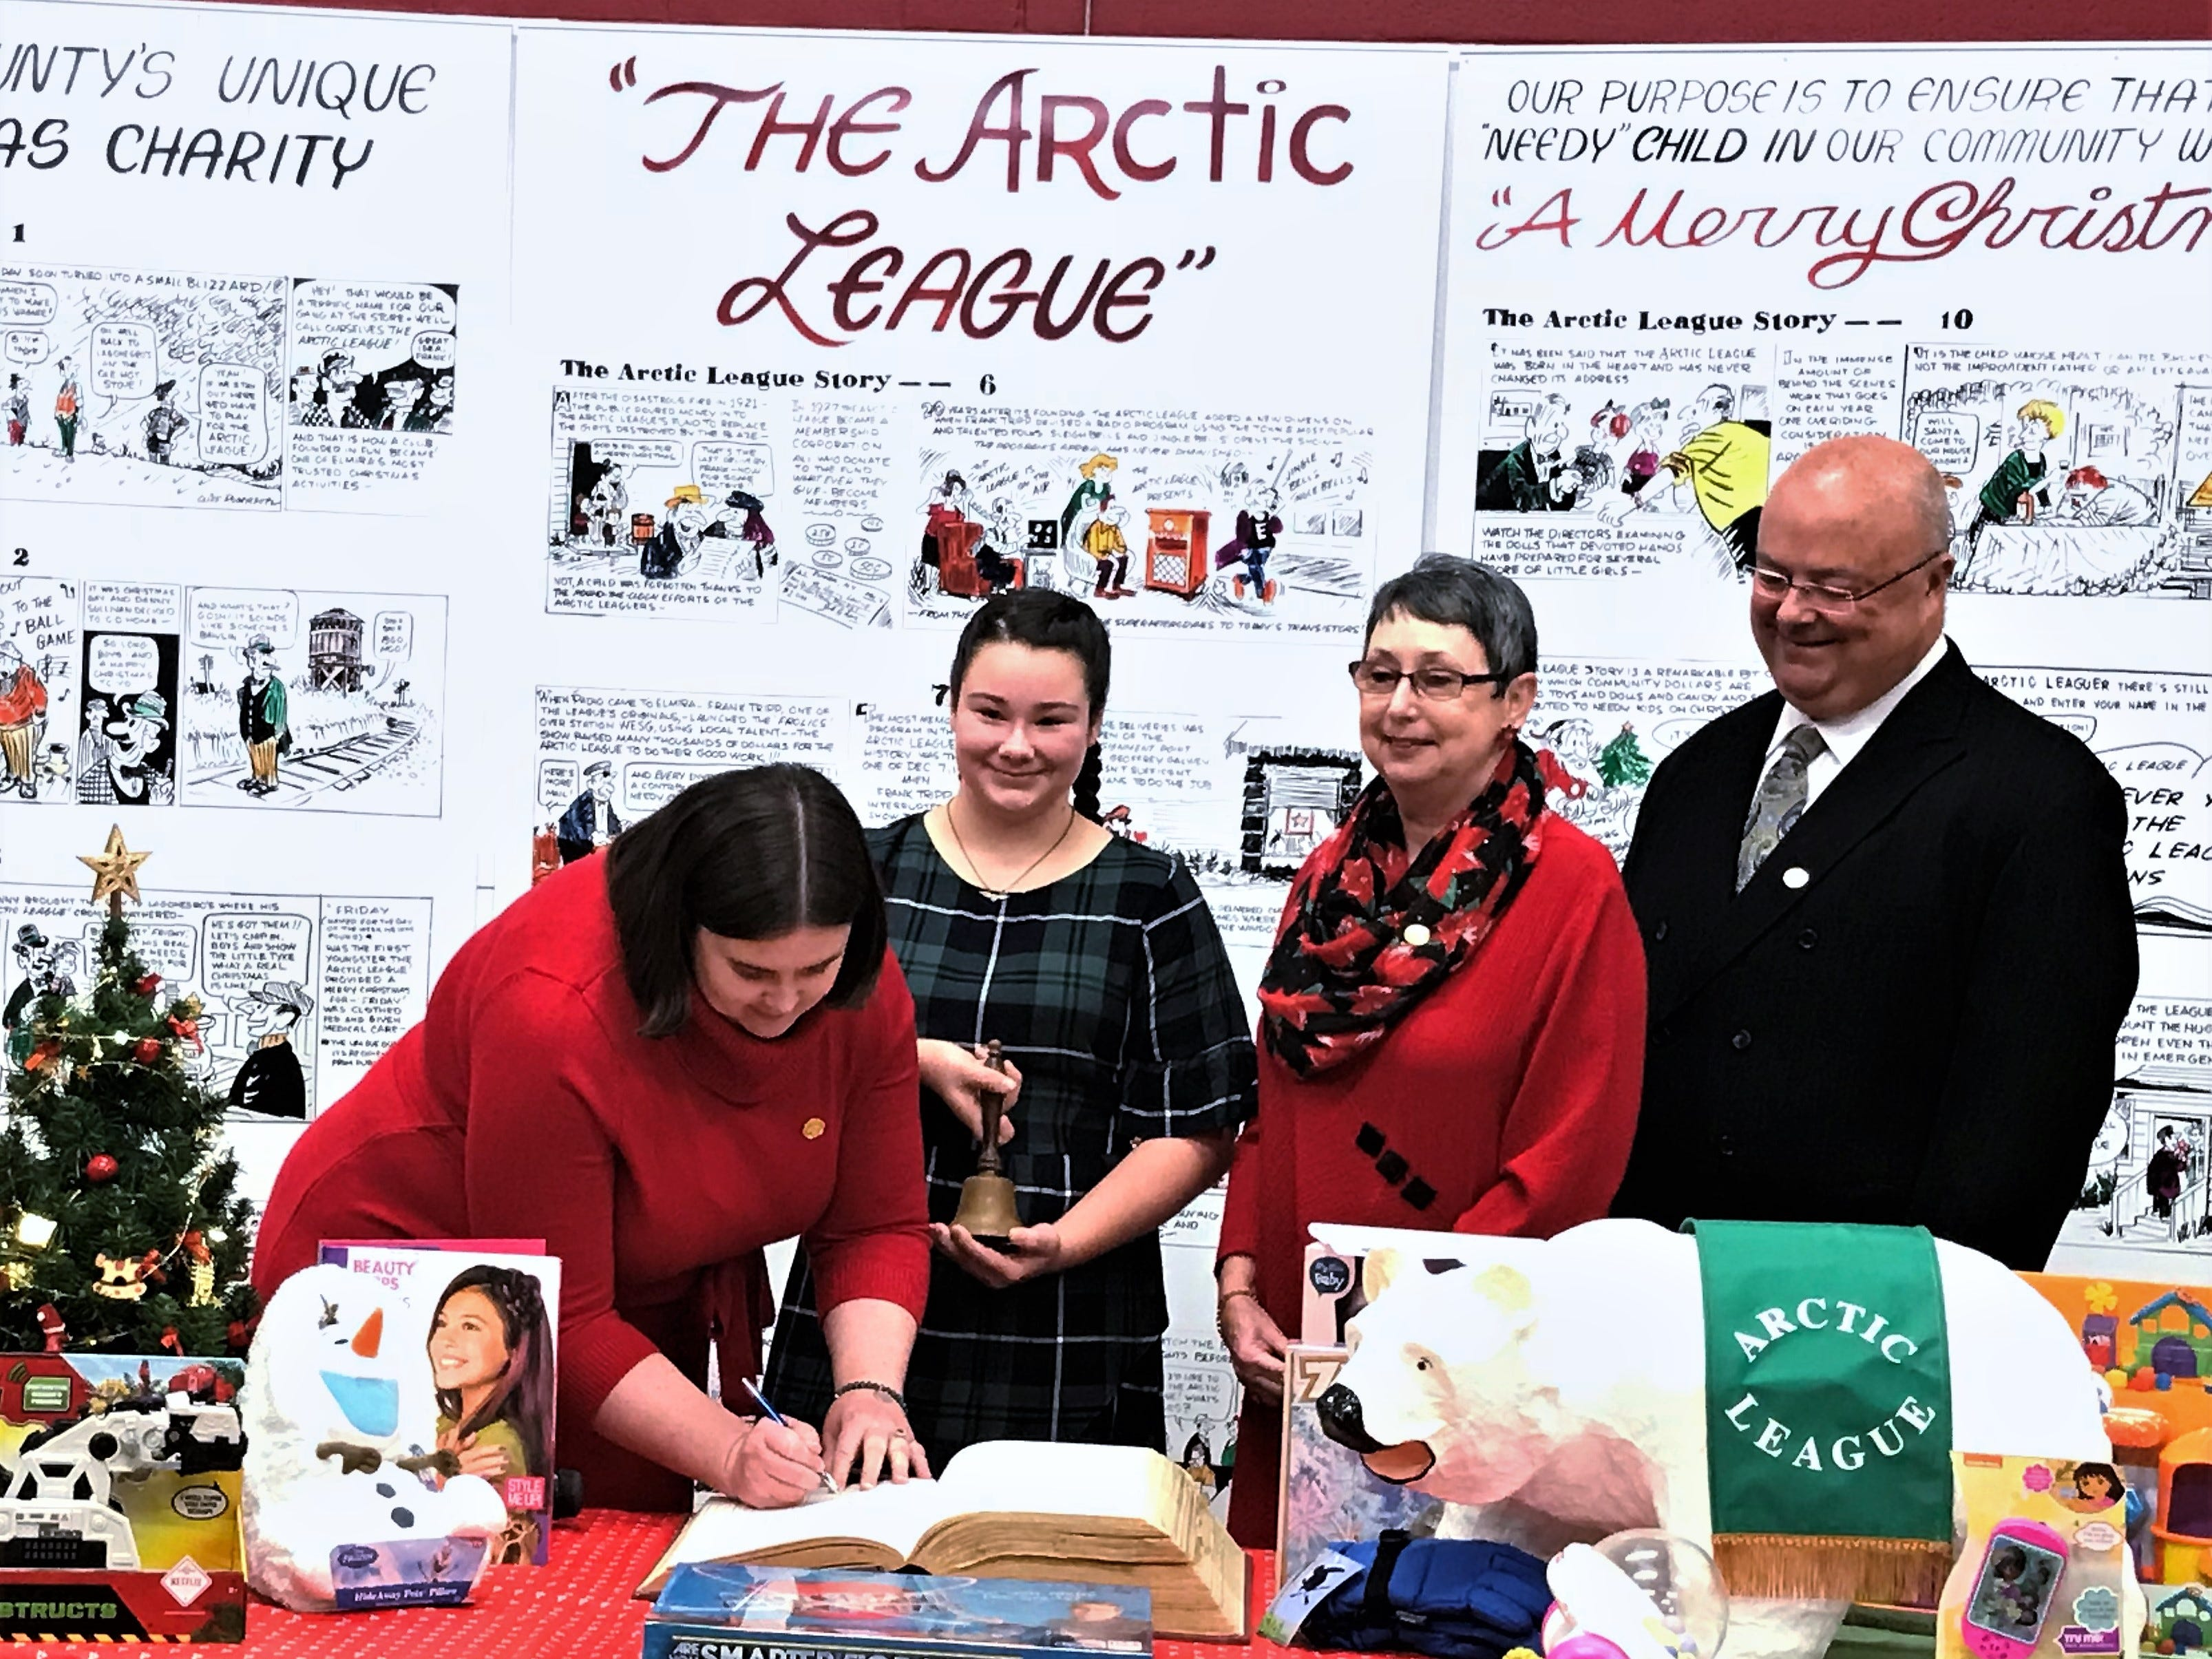 Arctic League opens Big Book, kicks off Christmas appeal for donations